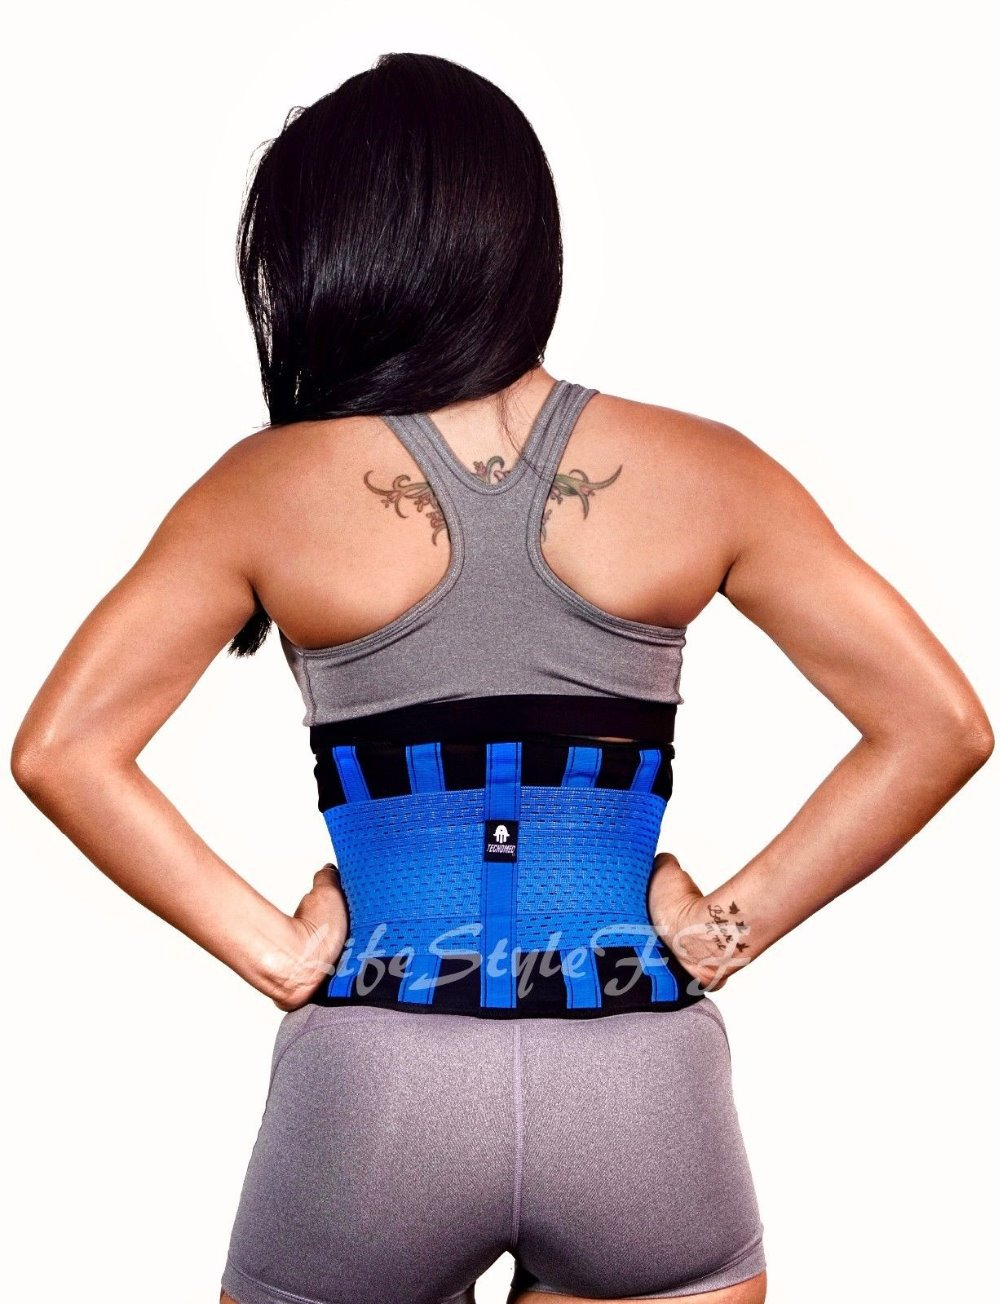 9c23ded98273b As Seen On TV Tecnomed Belt Fitness Body Shaper with blue black color now  avaialable-in Back Support from Sports   Entertainment on Aliexpress.com